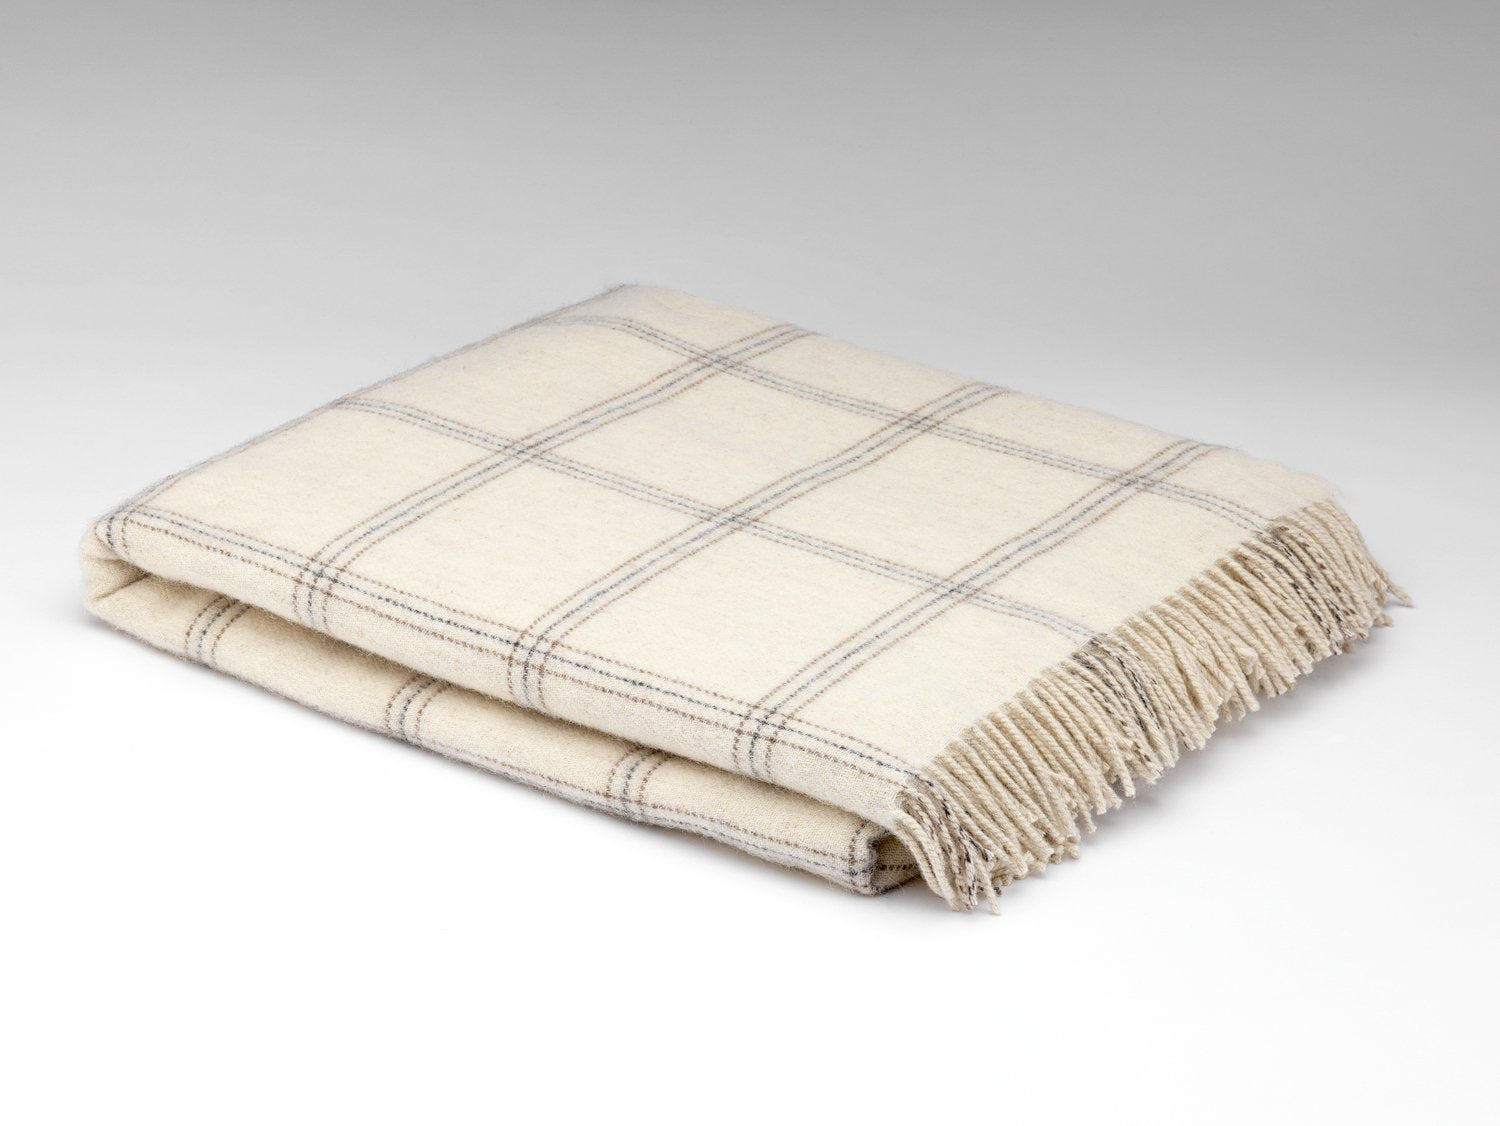 Mc Nutt alpaca throw white pearl window